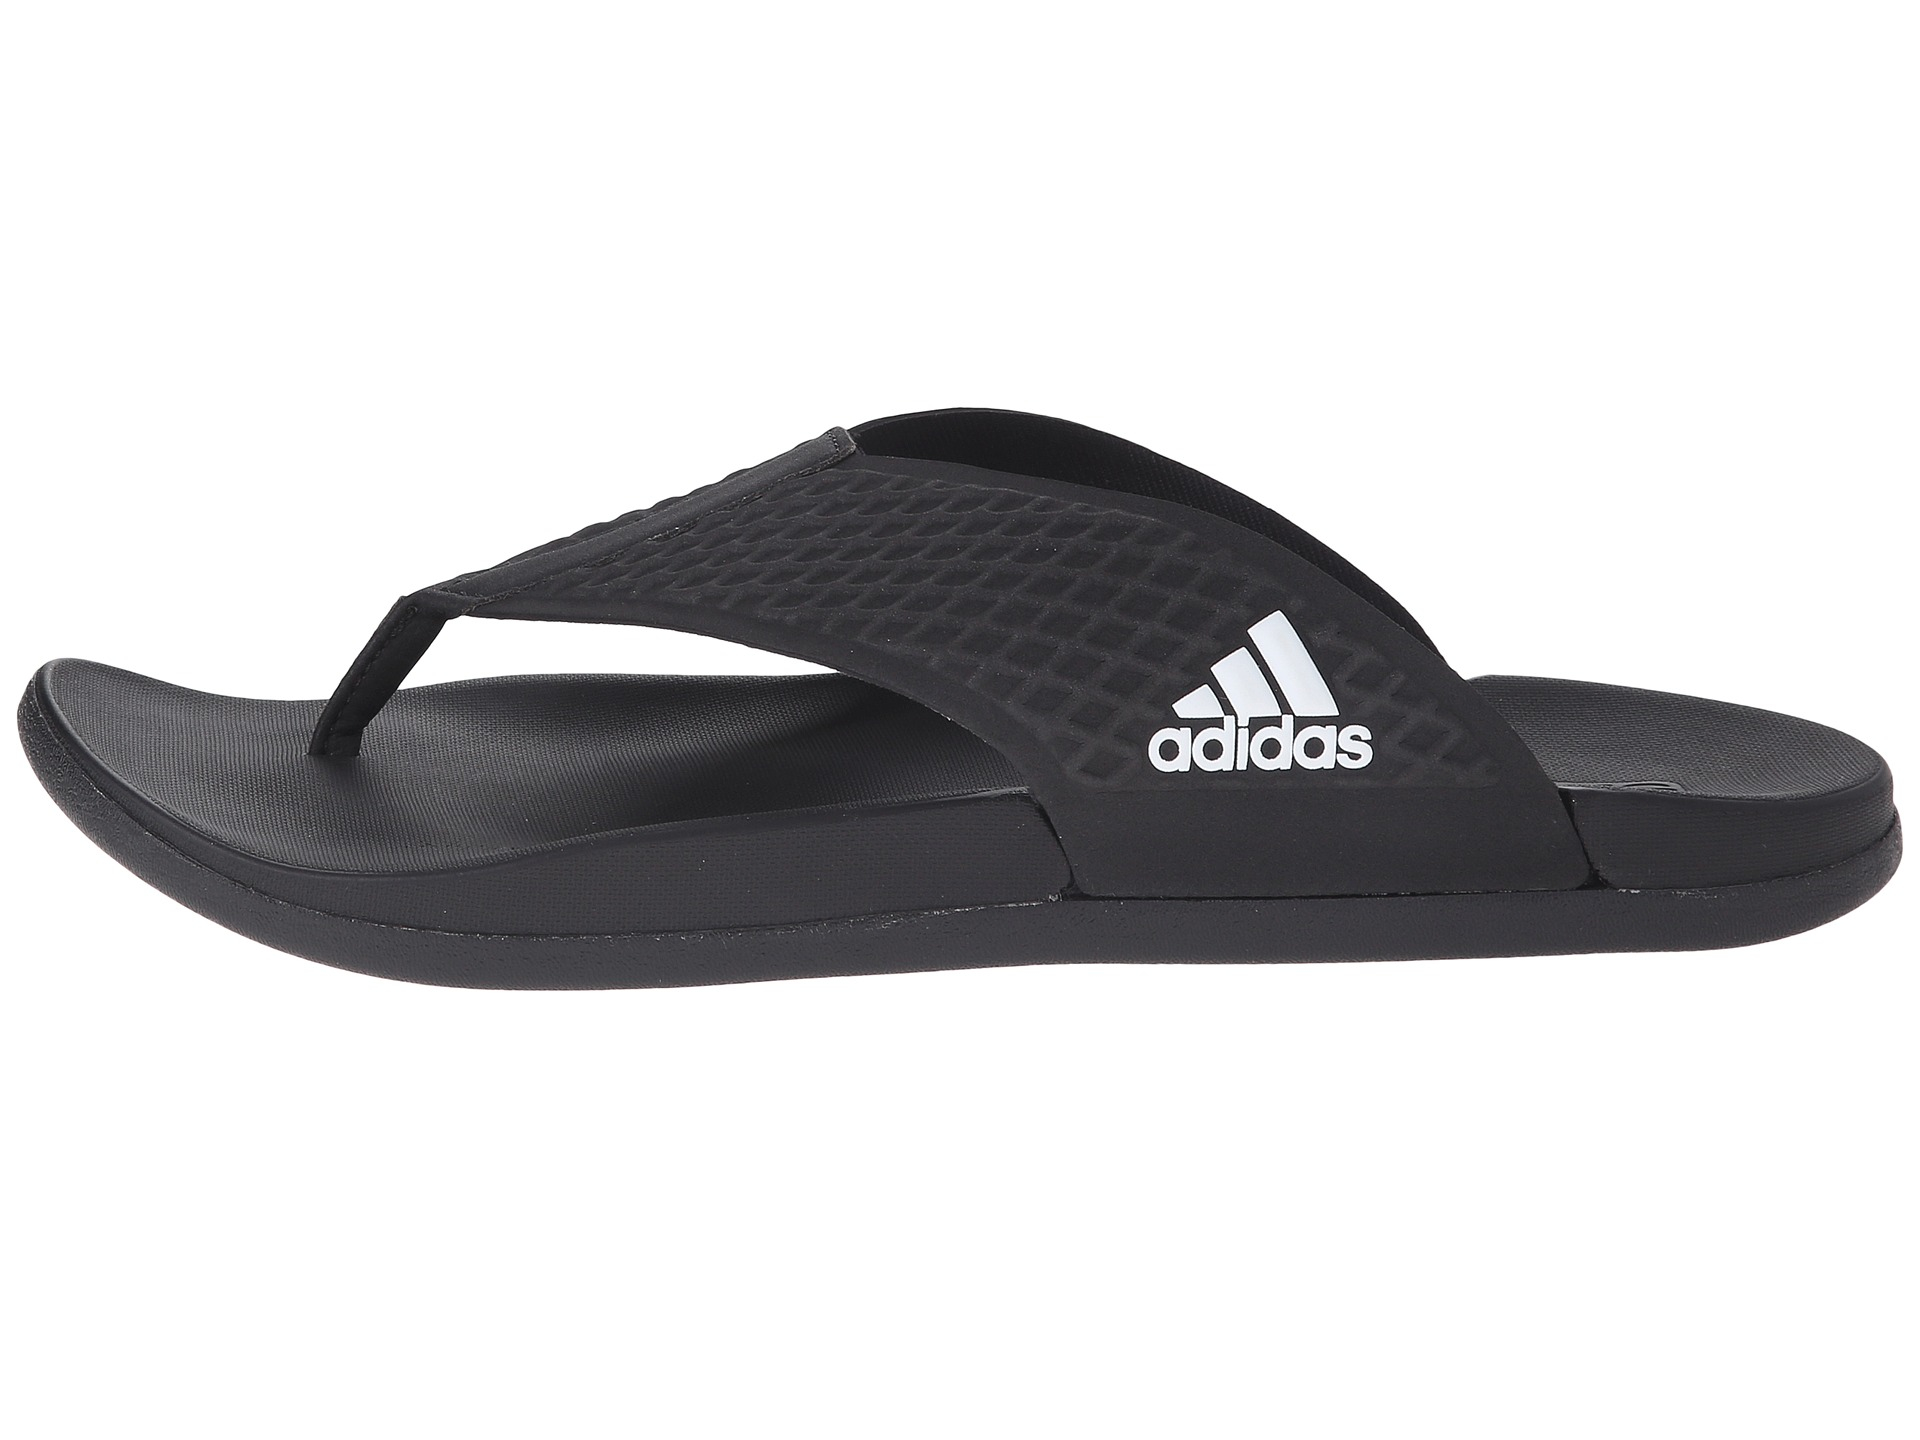 Lyst - adidas Originals Adilette Sc Plus Thong in Black for Men 35e1a615916d